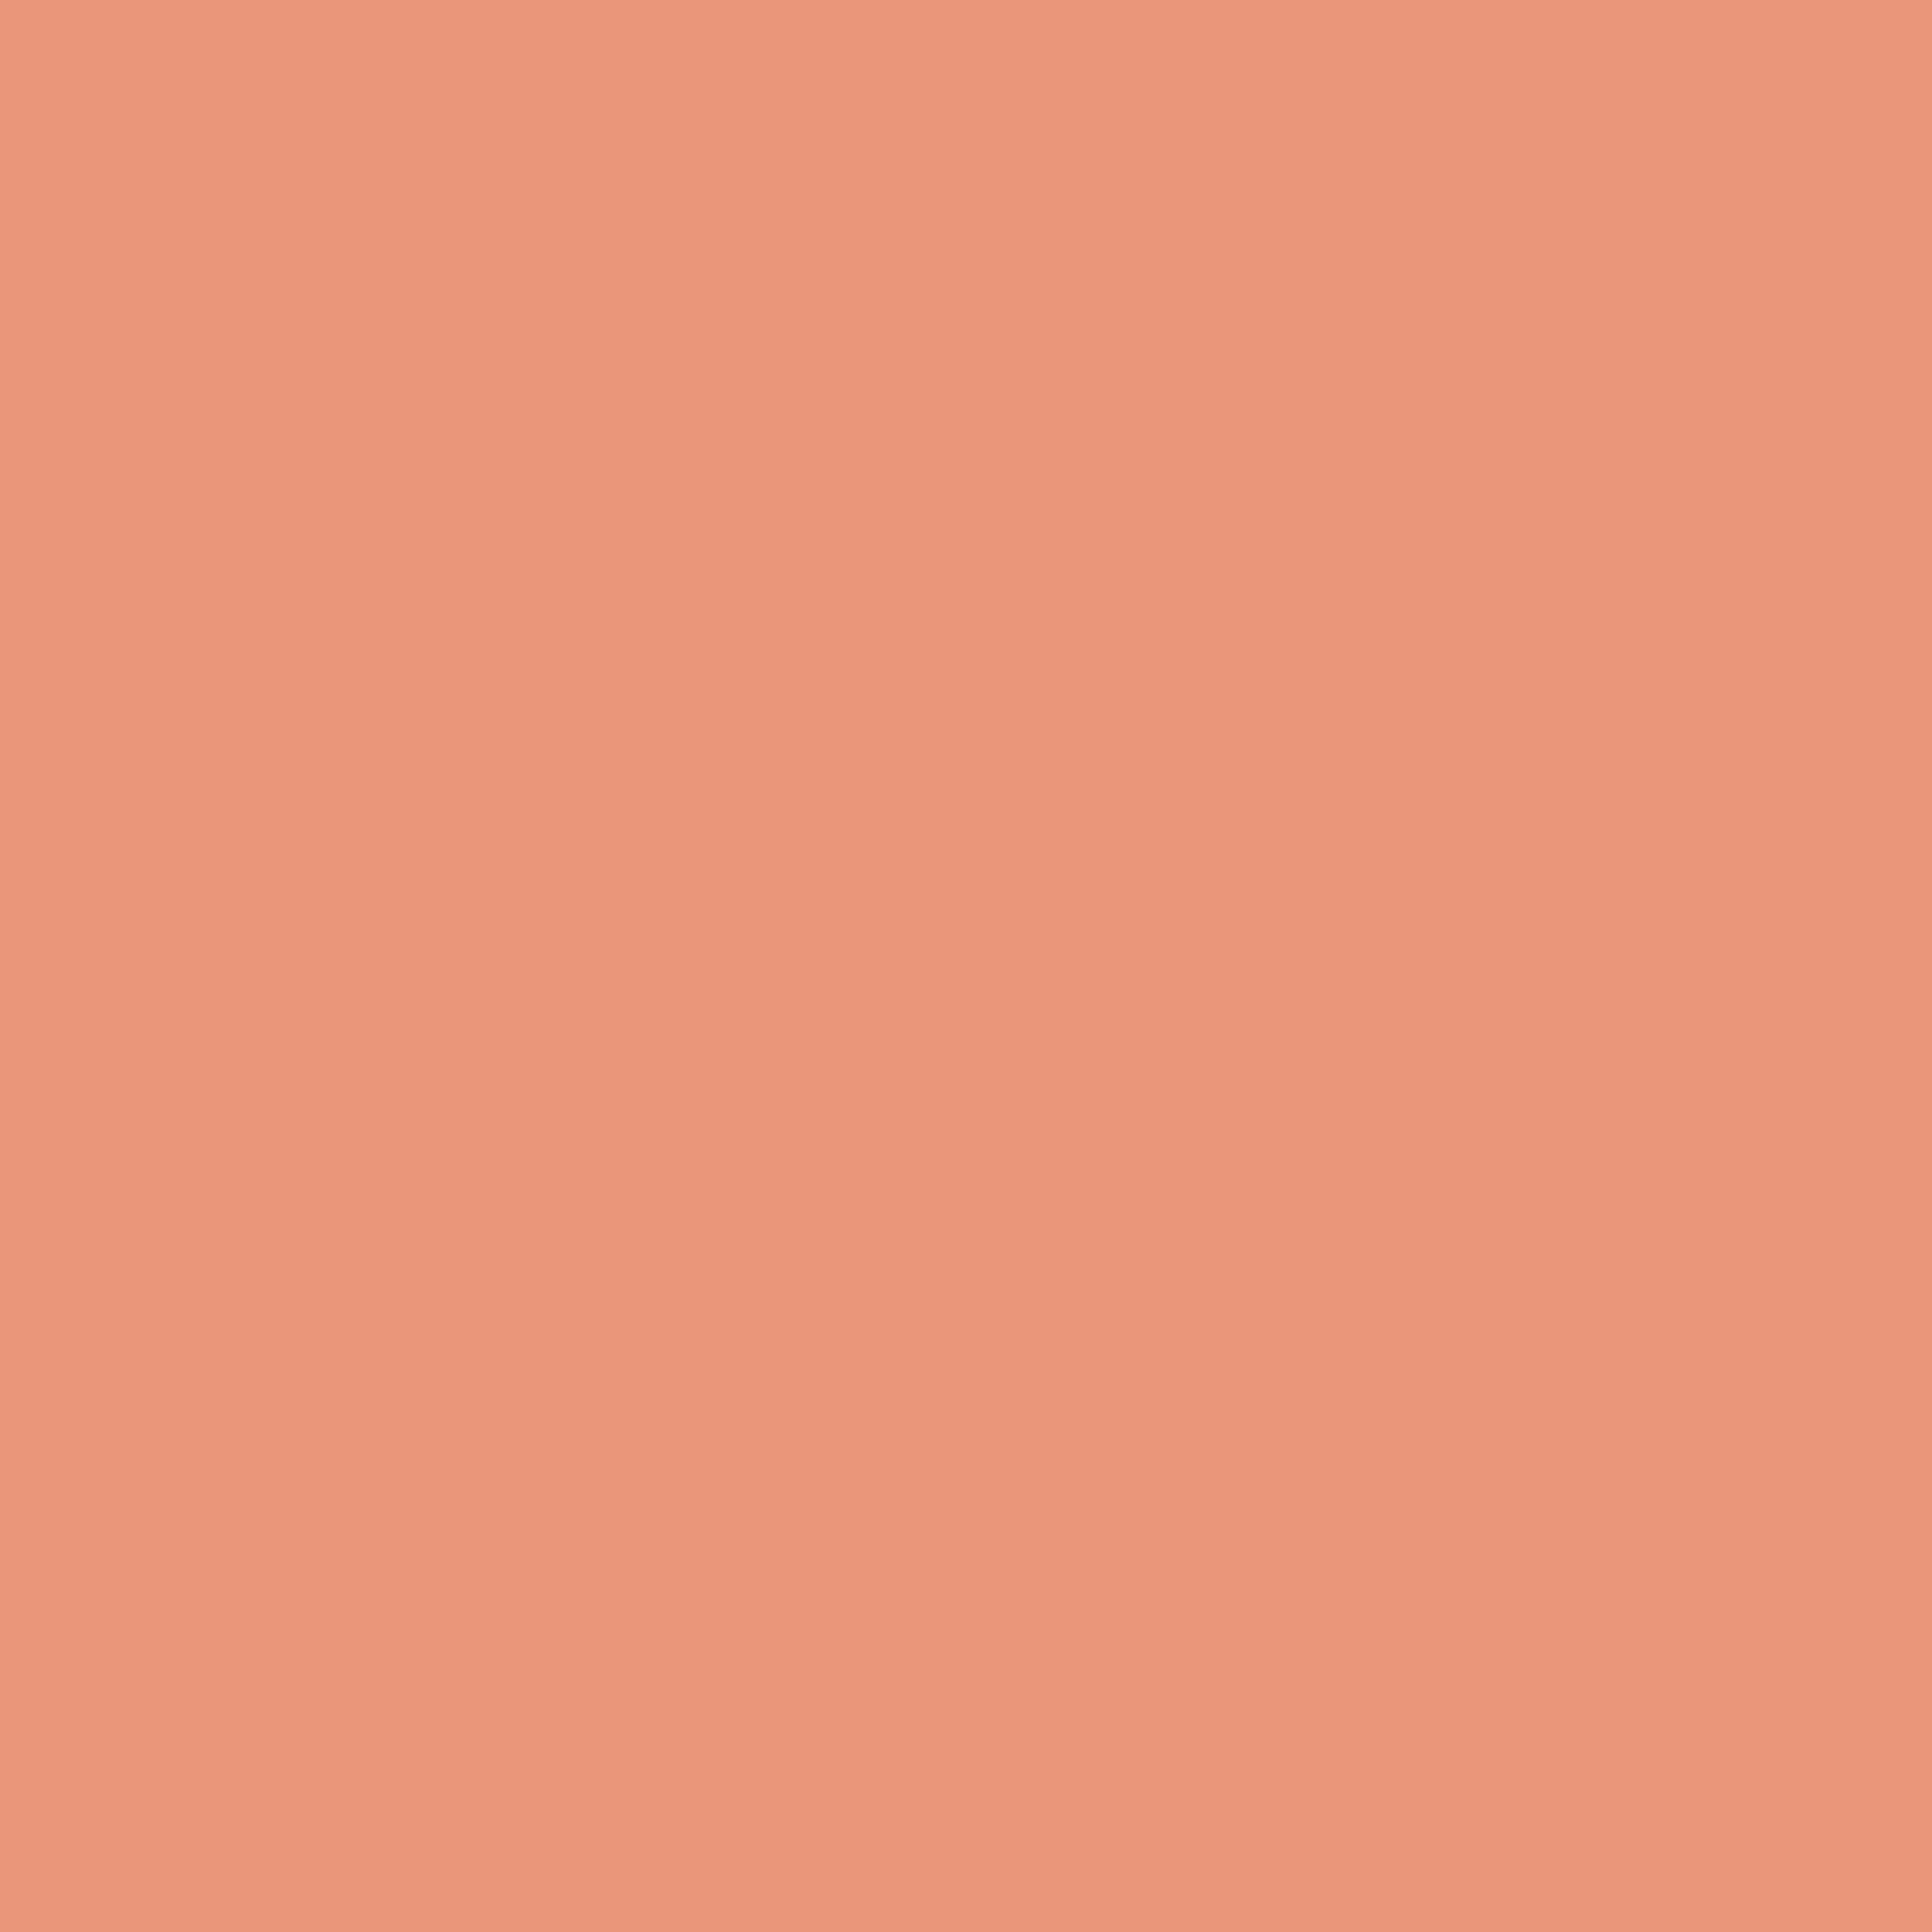 2048x2048 Dark Salmon Solid Color Background